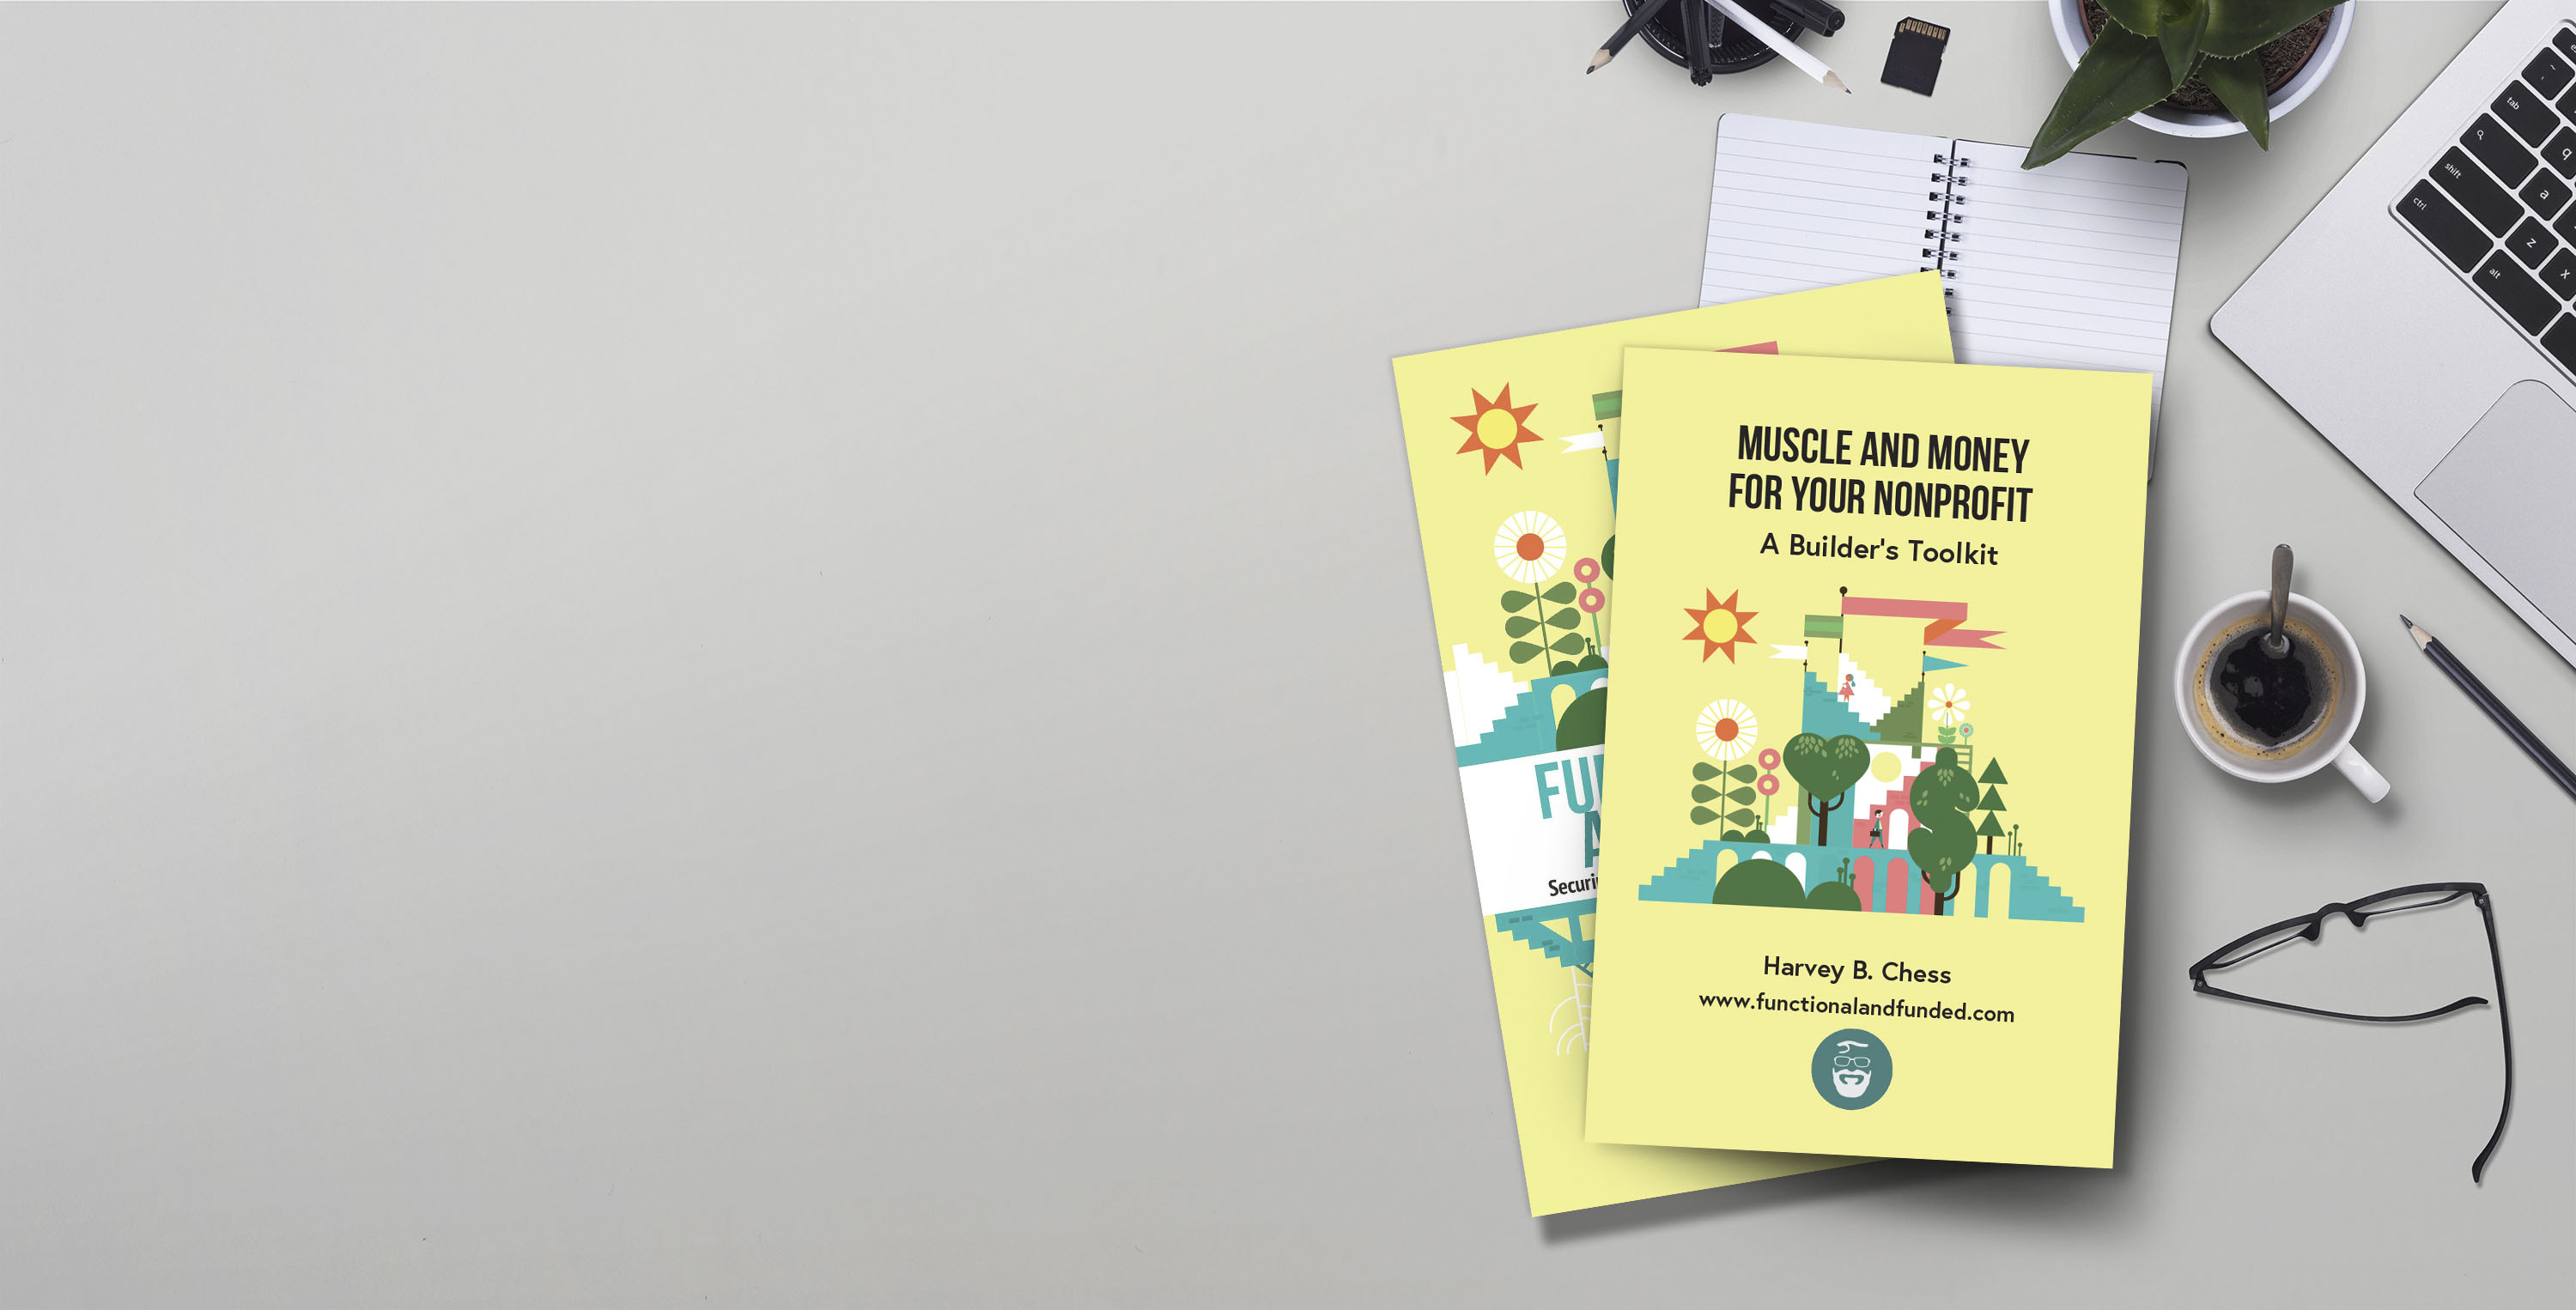 Muscle and Money for Your Nonprofit - A Builder's Toolkit